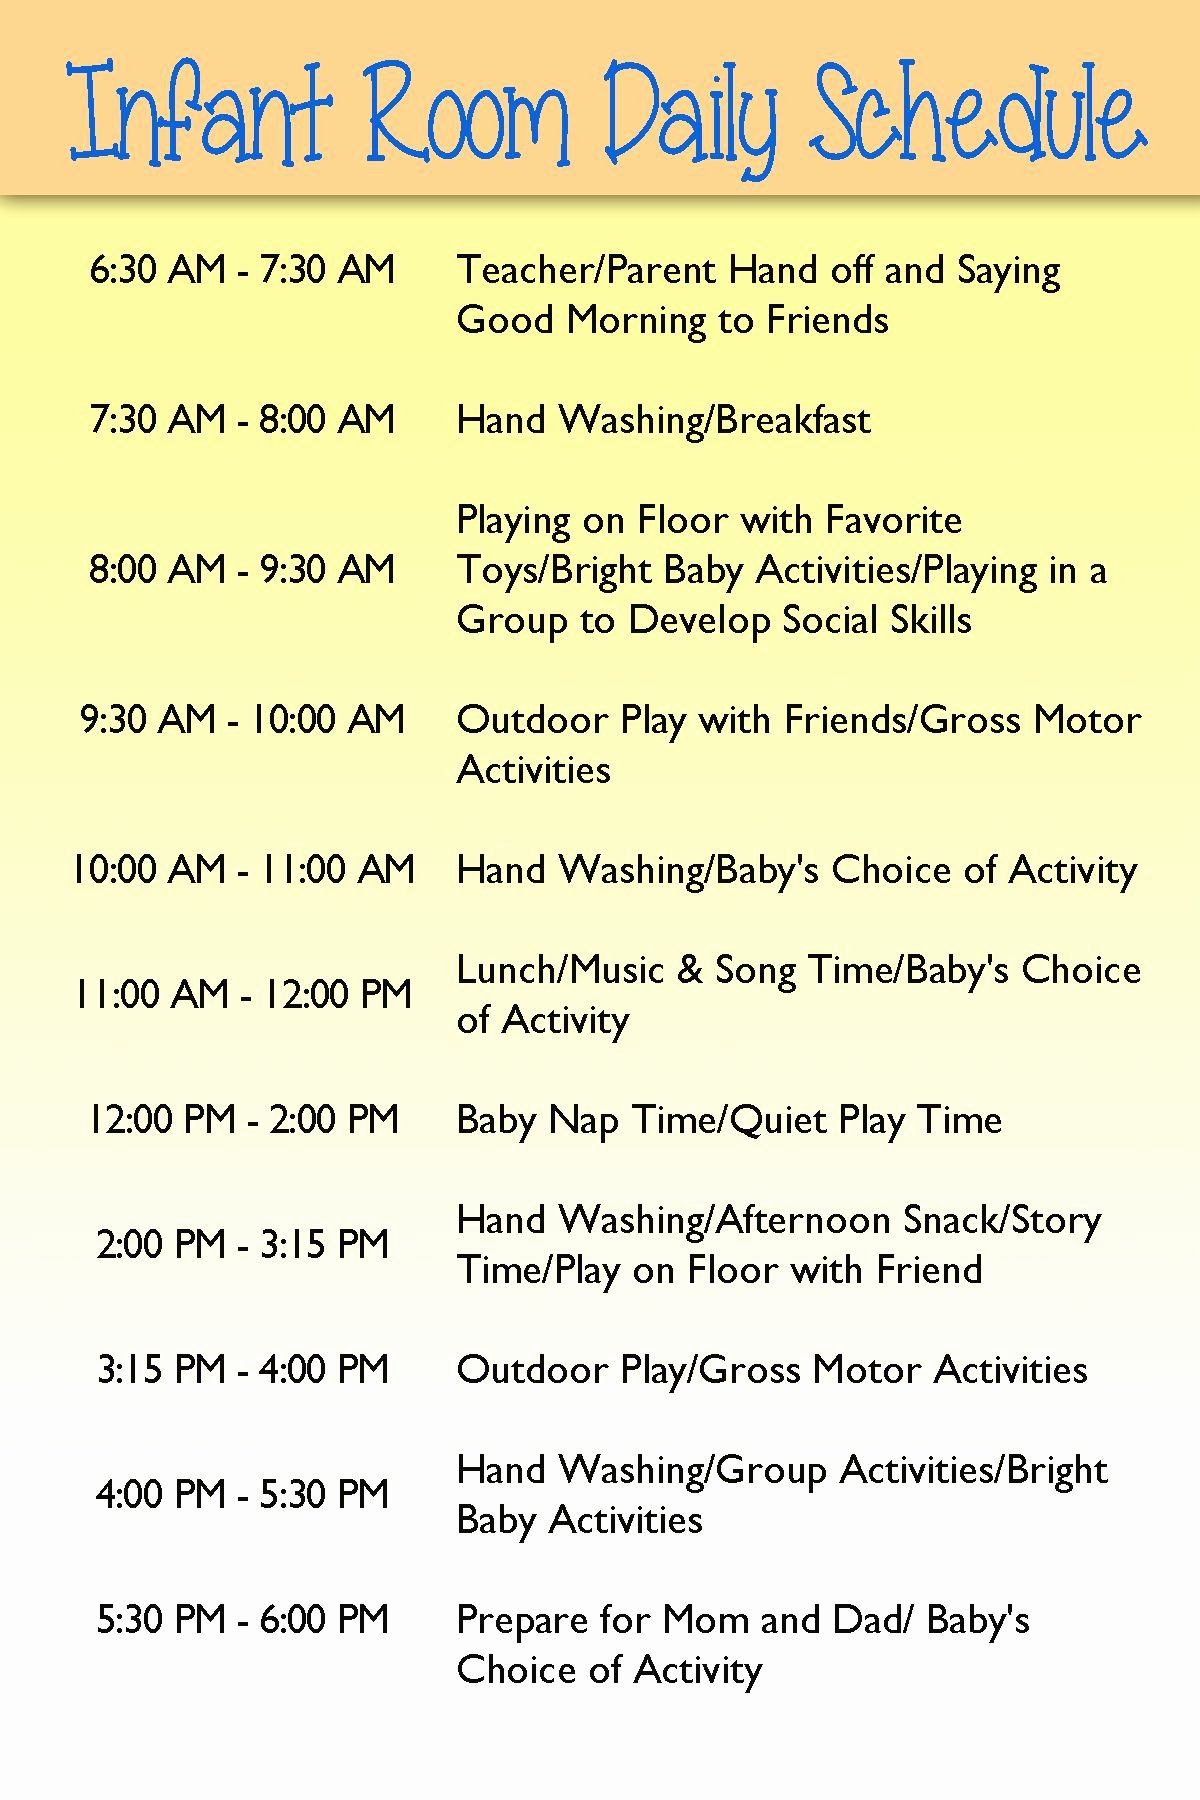 Daycare Staff Schedule Template Inspirational Infant Day Care Schedule Infants